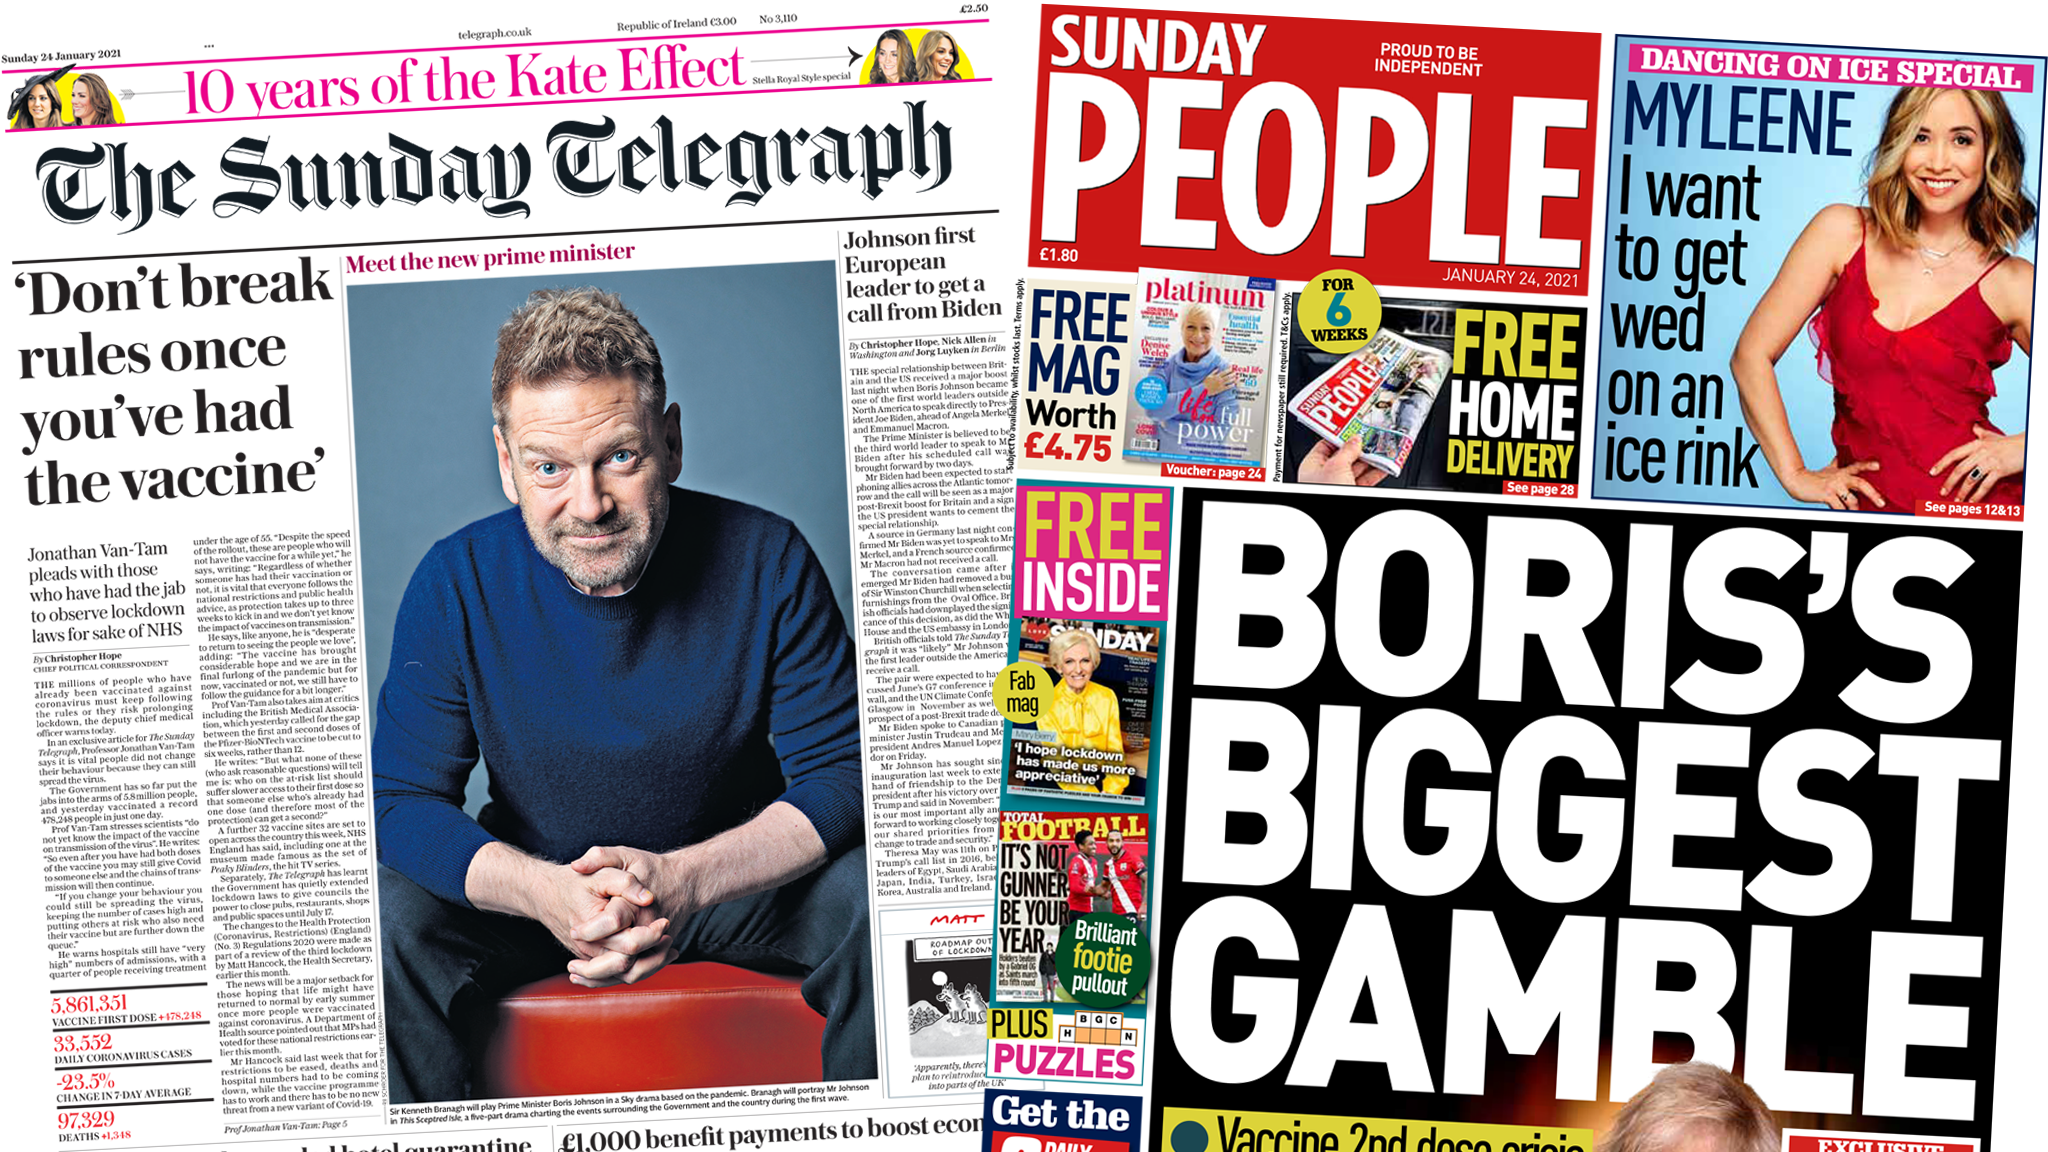 Sunday Telegraph and sunday People